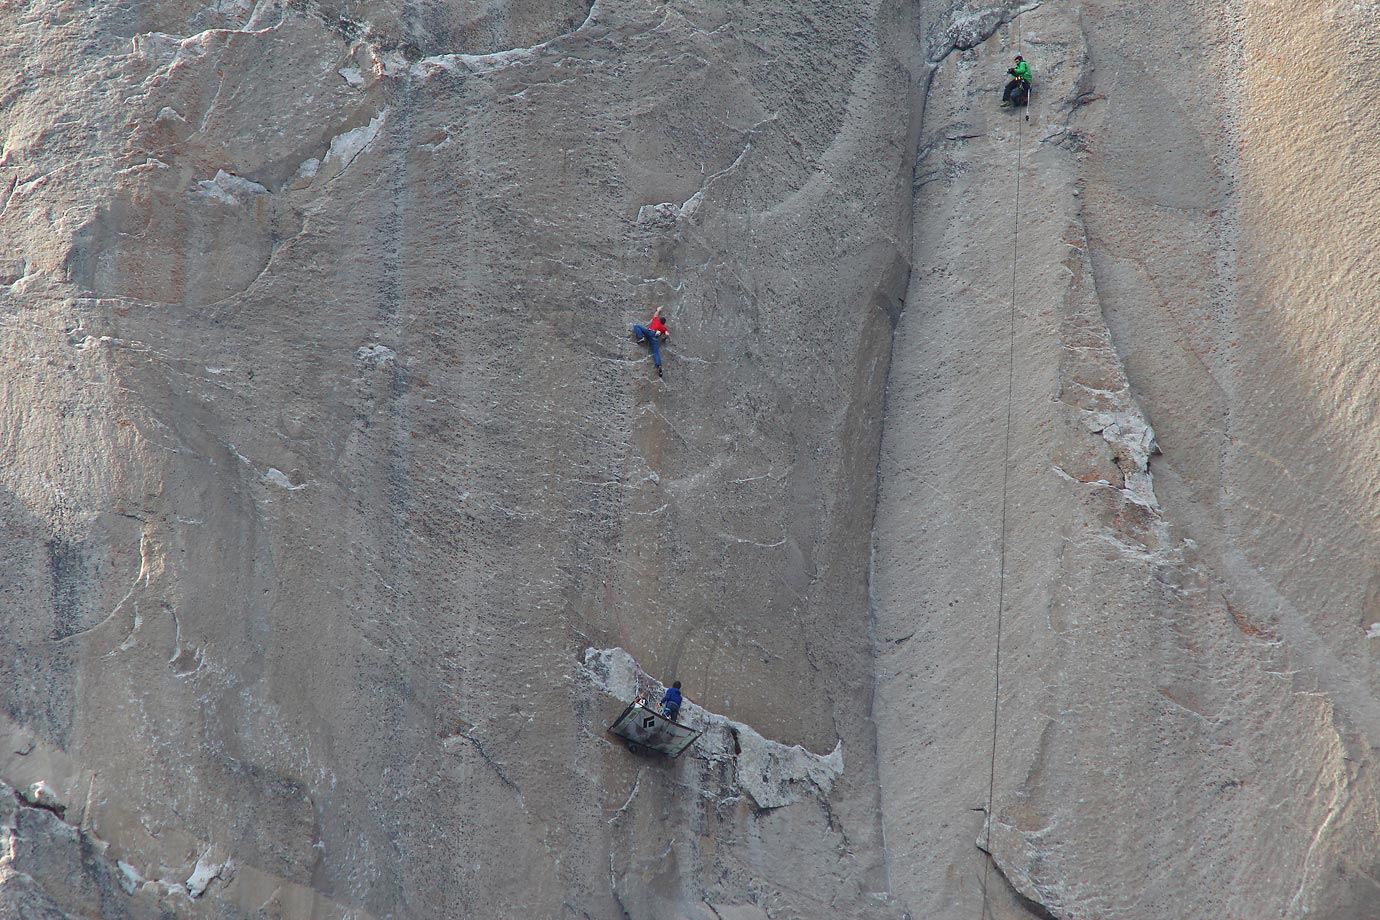 Tommy Caldwell (in red) climbing Pitch 19 and Kevin Jorgeson (in blue) is belaying on his rest day. Brett Lowell (cameraman, in green) is shooting from above.